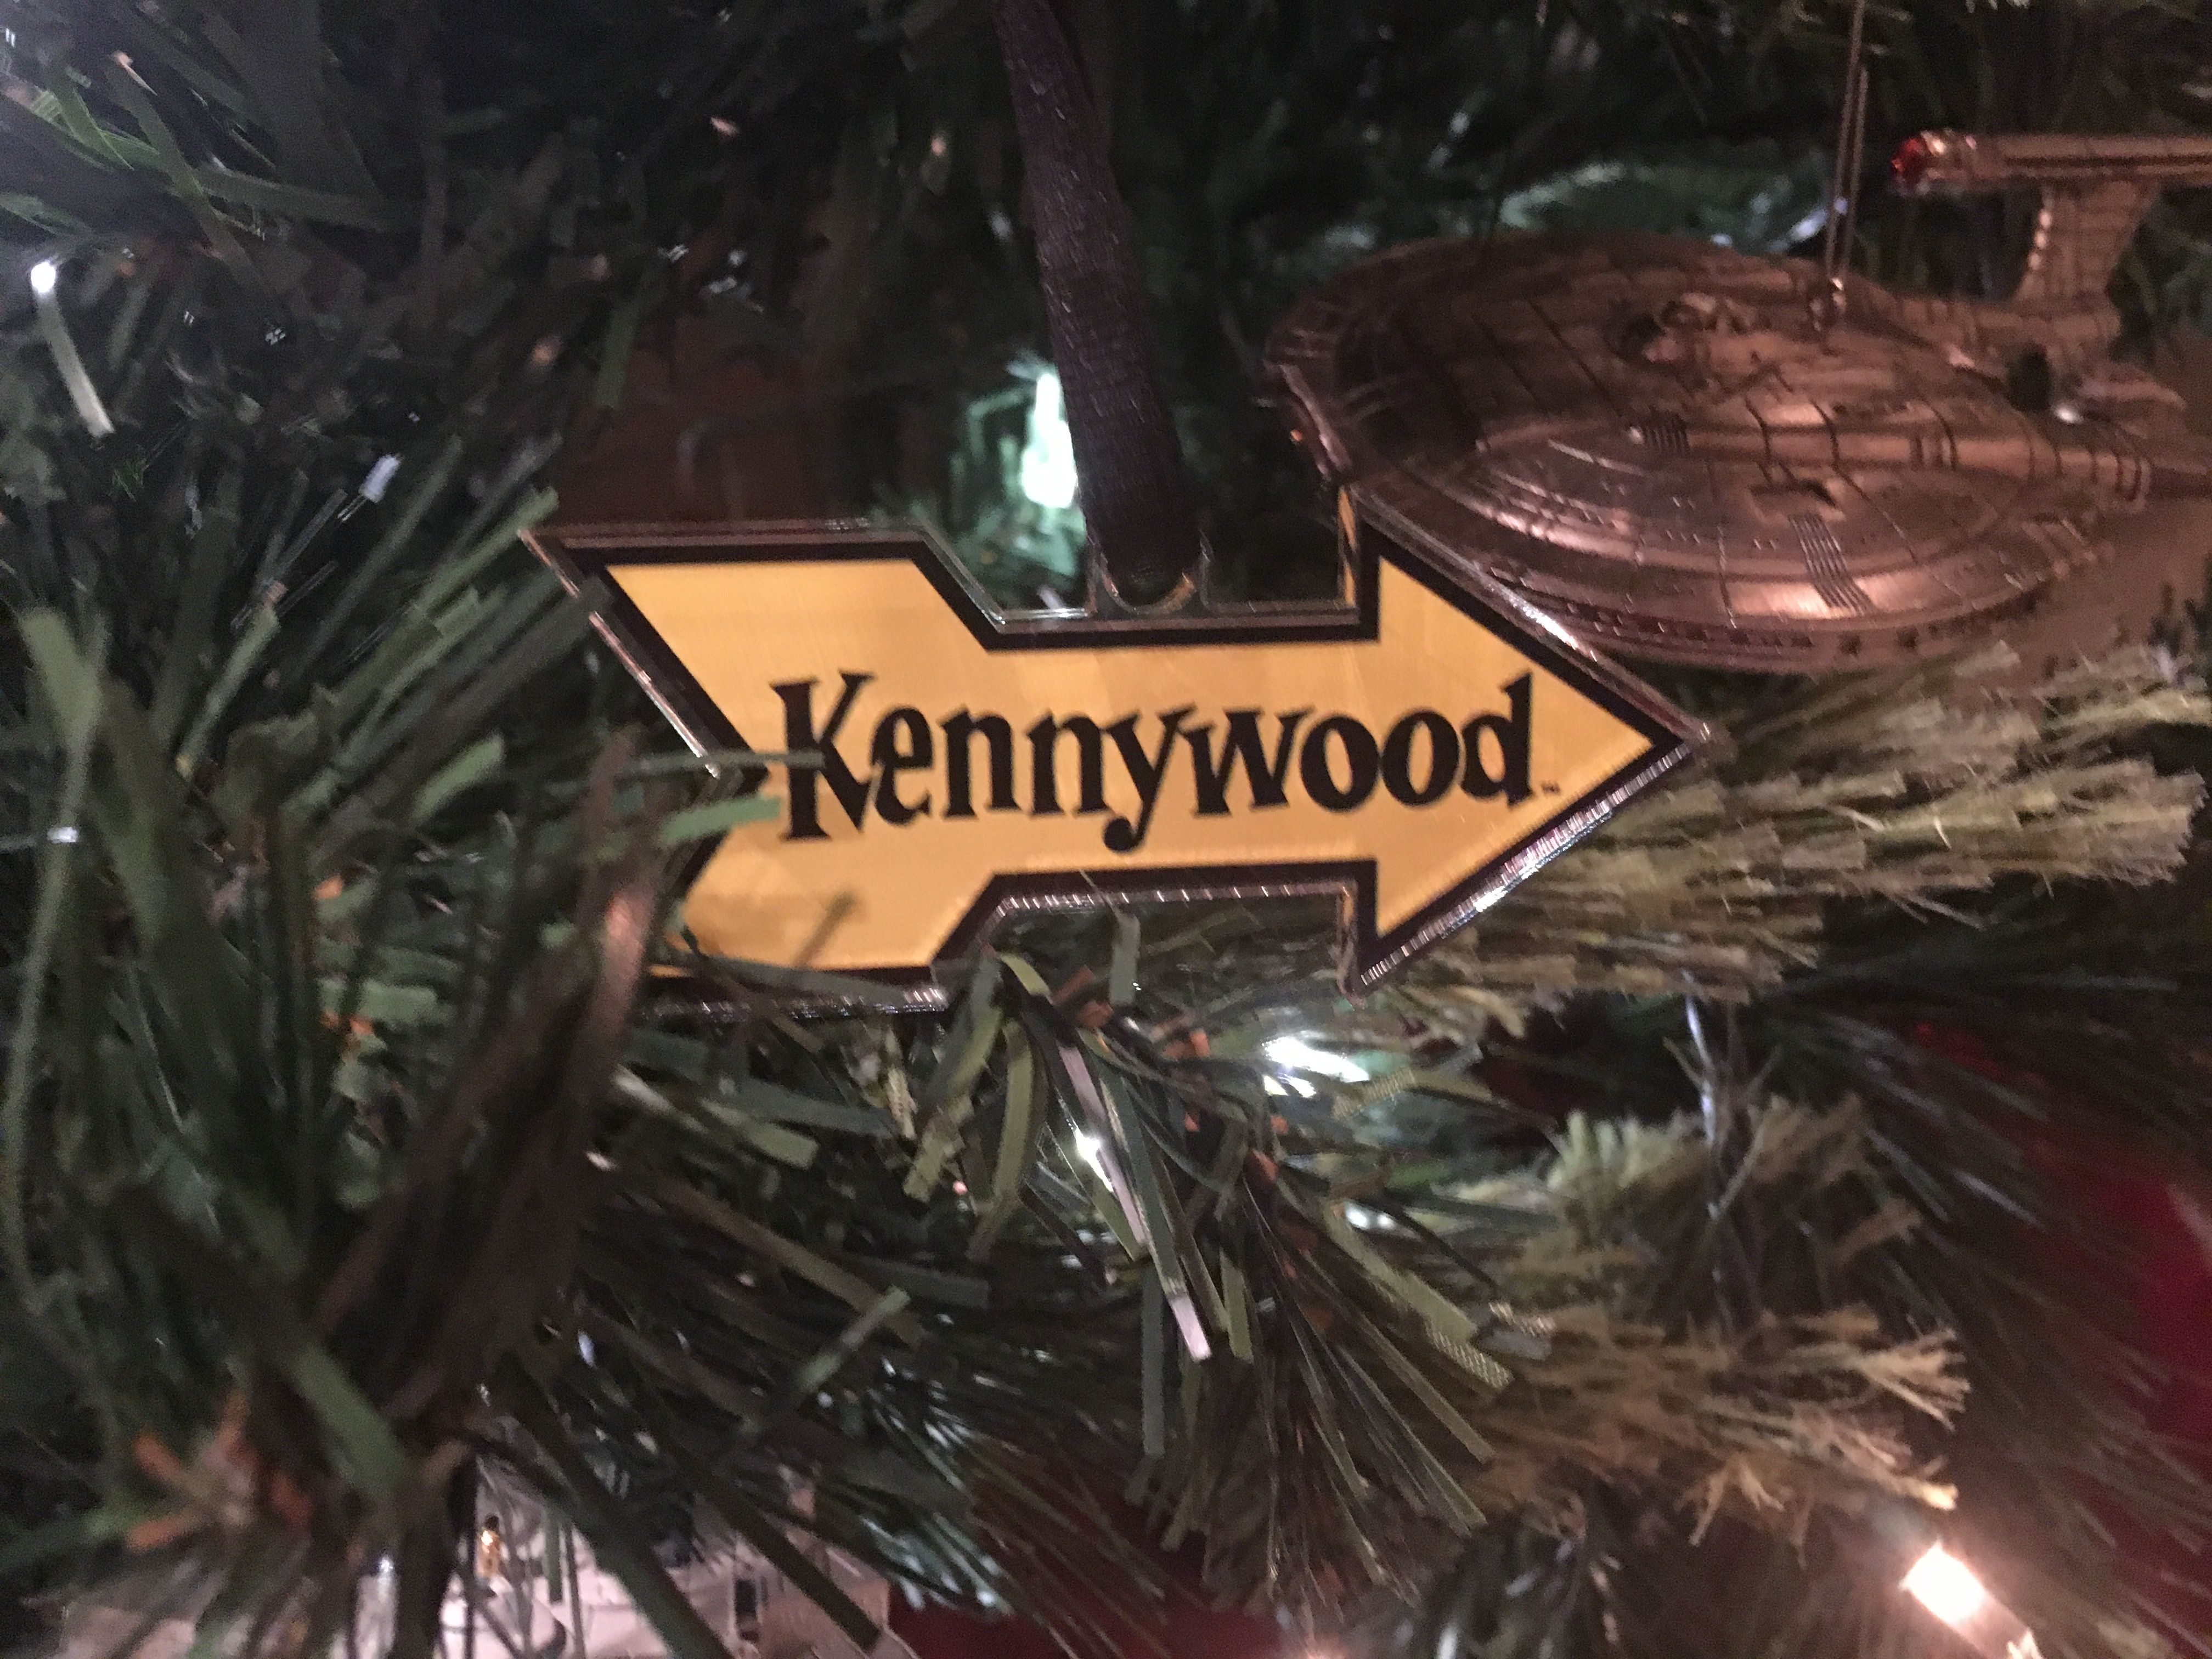 Kennywood Christmas Ornament | Christmas Tree | Pinterest ...